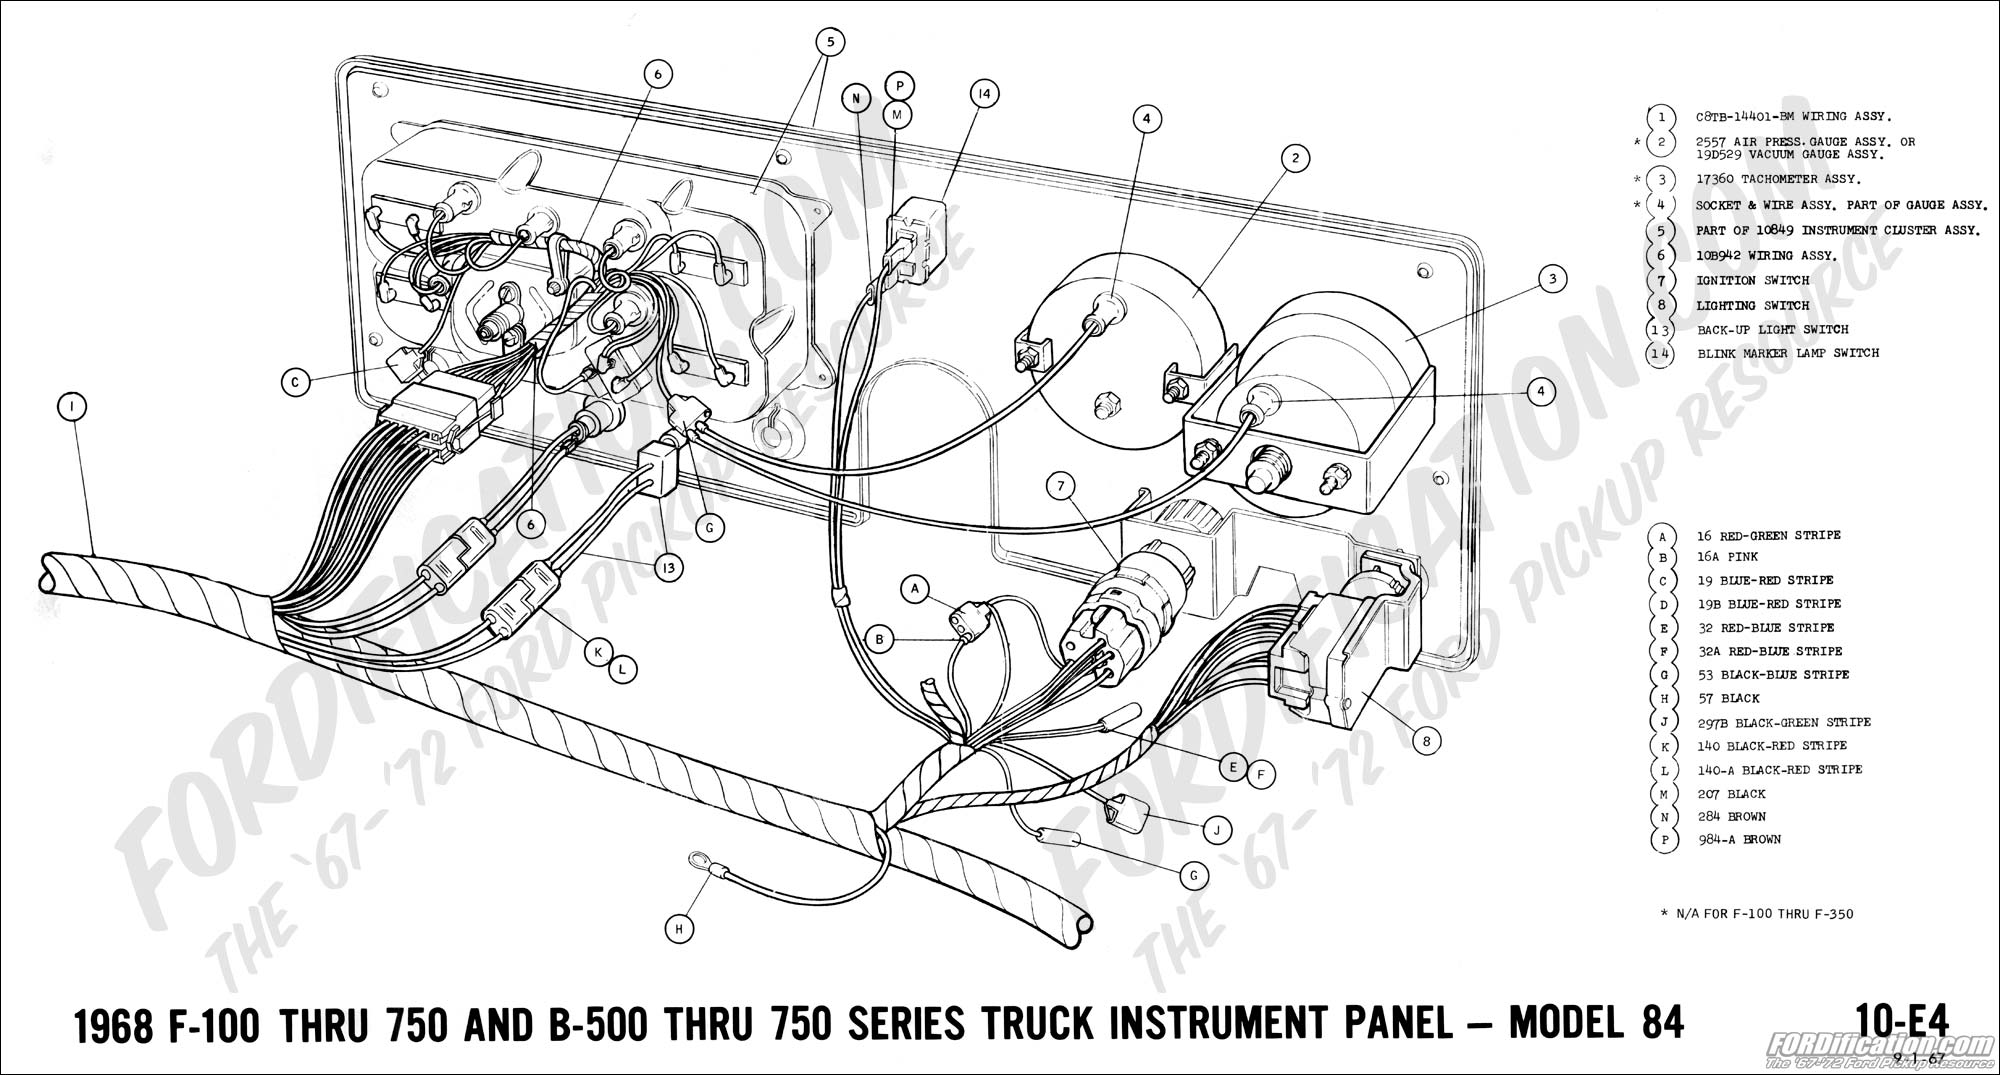 1969 chevelle gauge wiring diagram wiring diagram how to fix your dash lights by team aro tech 1969 chevelle door window diagram further mustang wiring schematic, 1970 Mustang Mach 1 Wiring Schematic